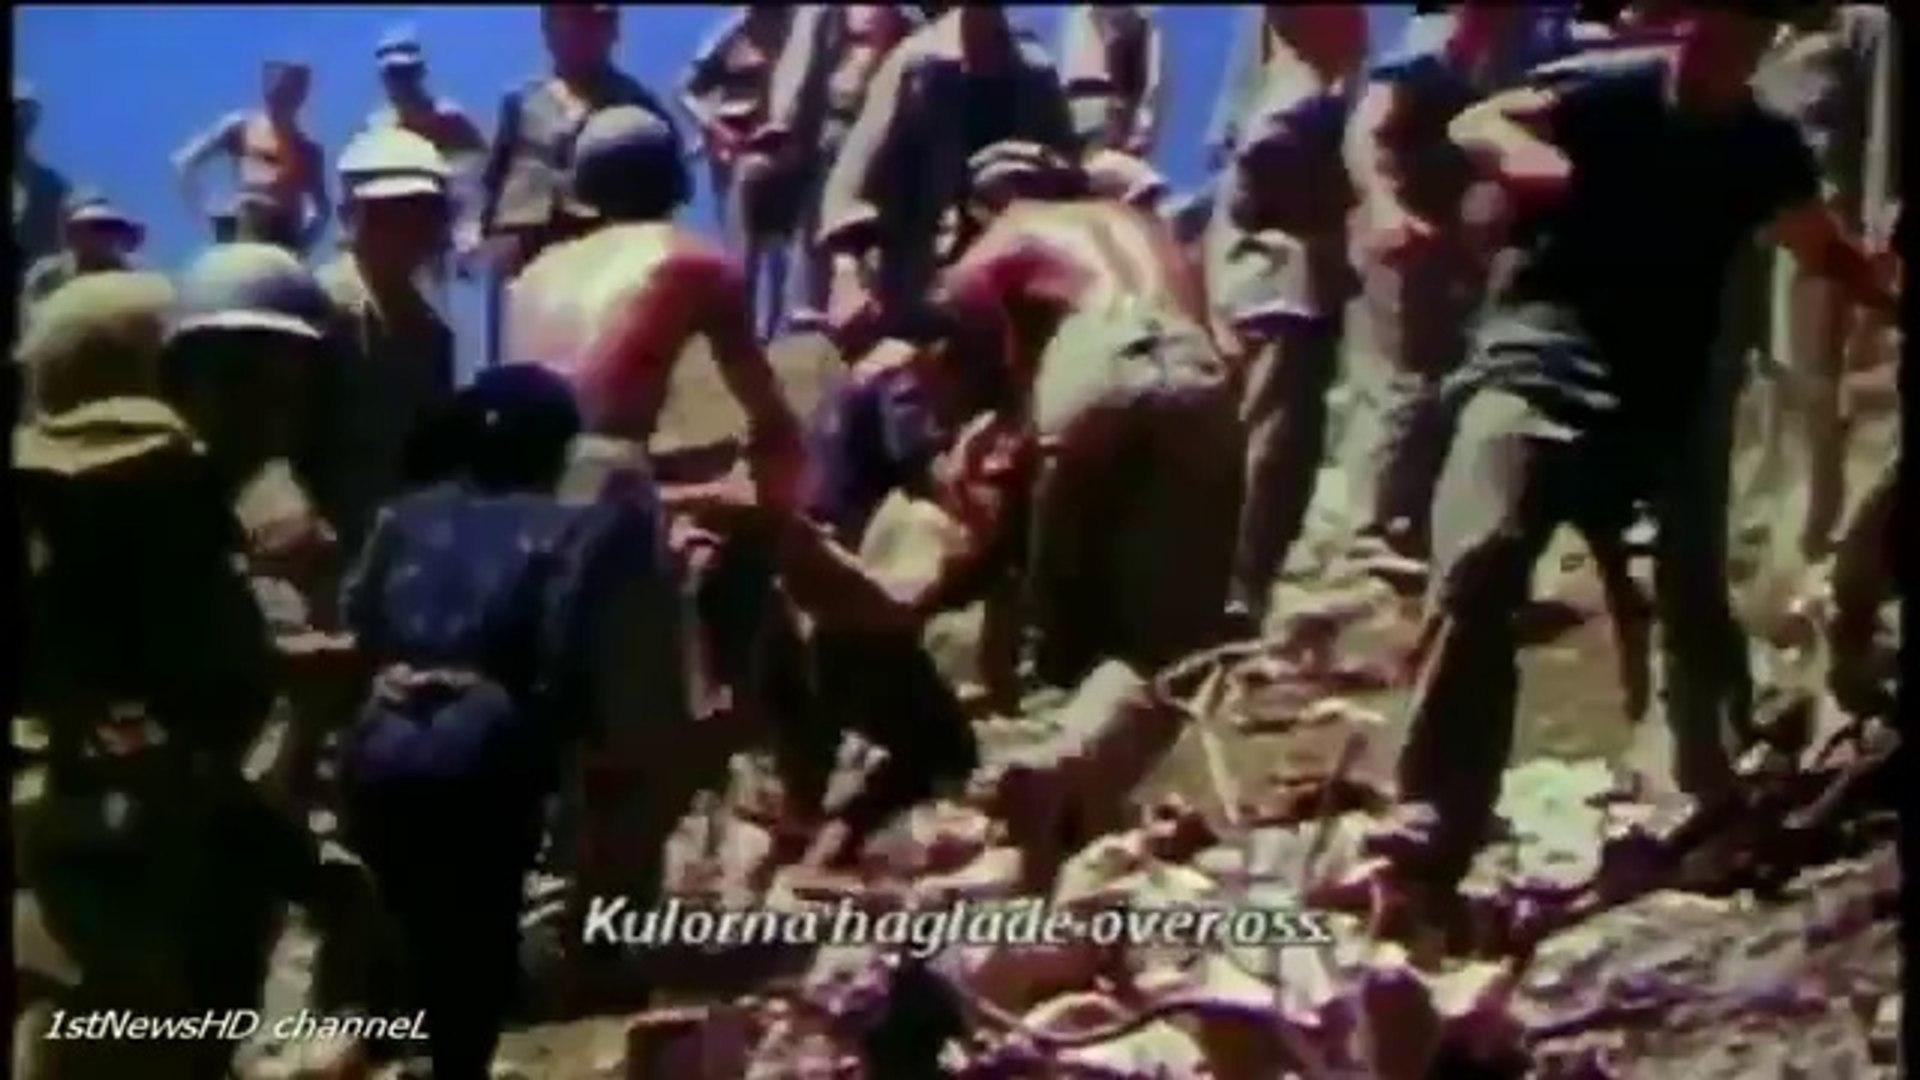 JAPAN - WORLD WAR II - THE COMPLETE STORY IN COLOR - Discovery/Military/History (documentary)